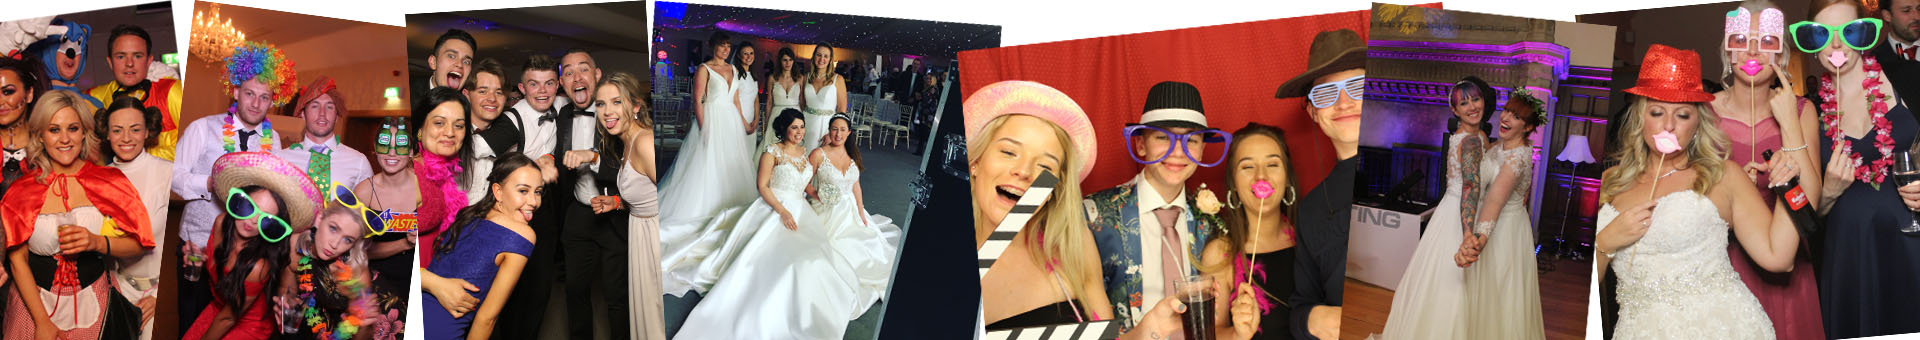 Brides at wedding with magic mirror photo booth hire in farnham